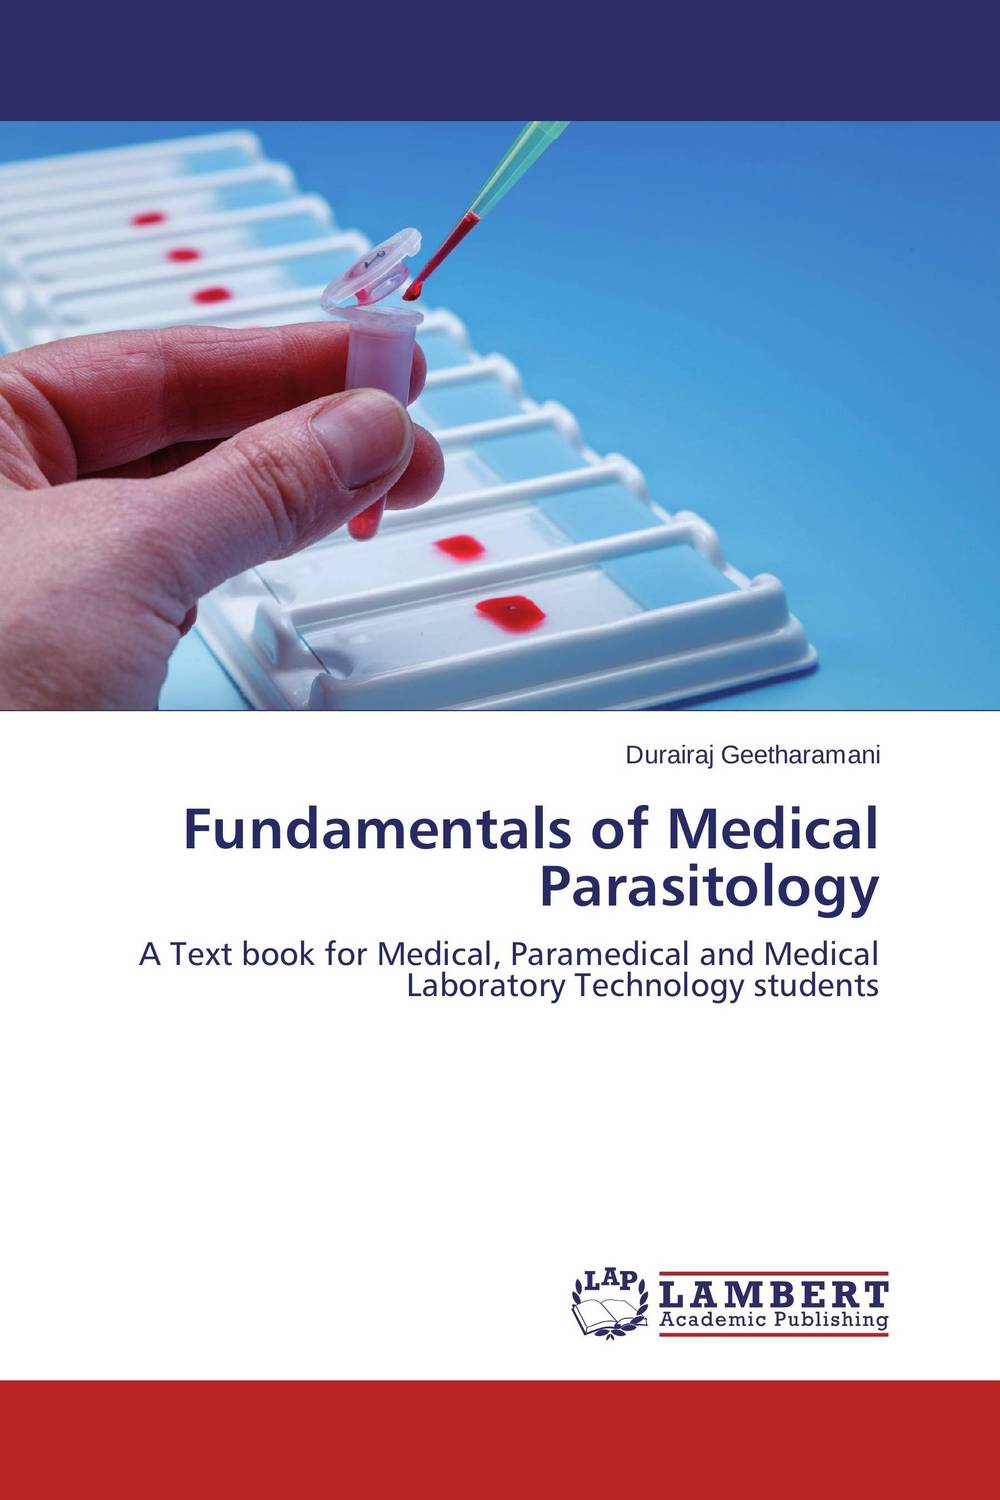 Fundamentals of Medical Parasitology fundamentals of physics extended 9th edition international student version with wileyplus set